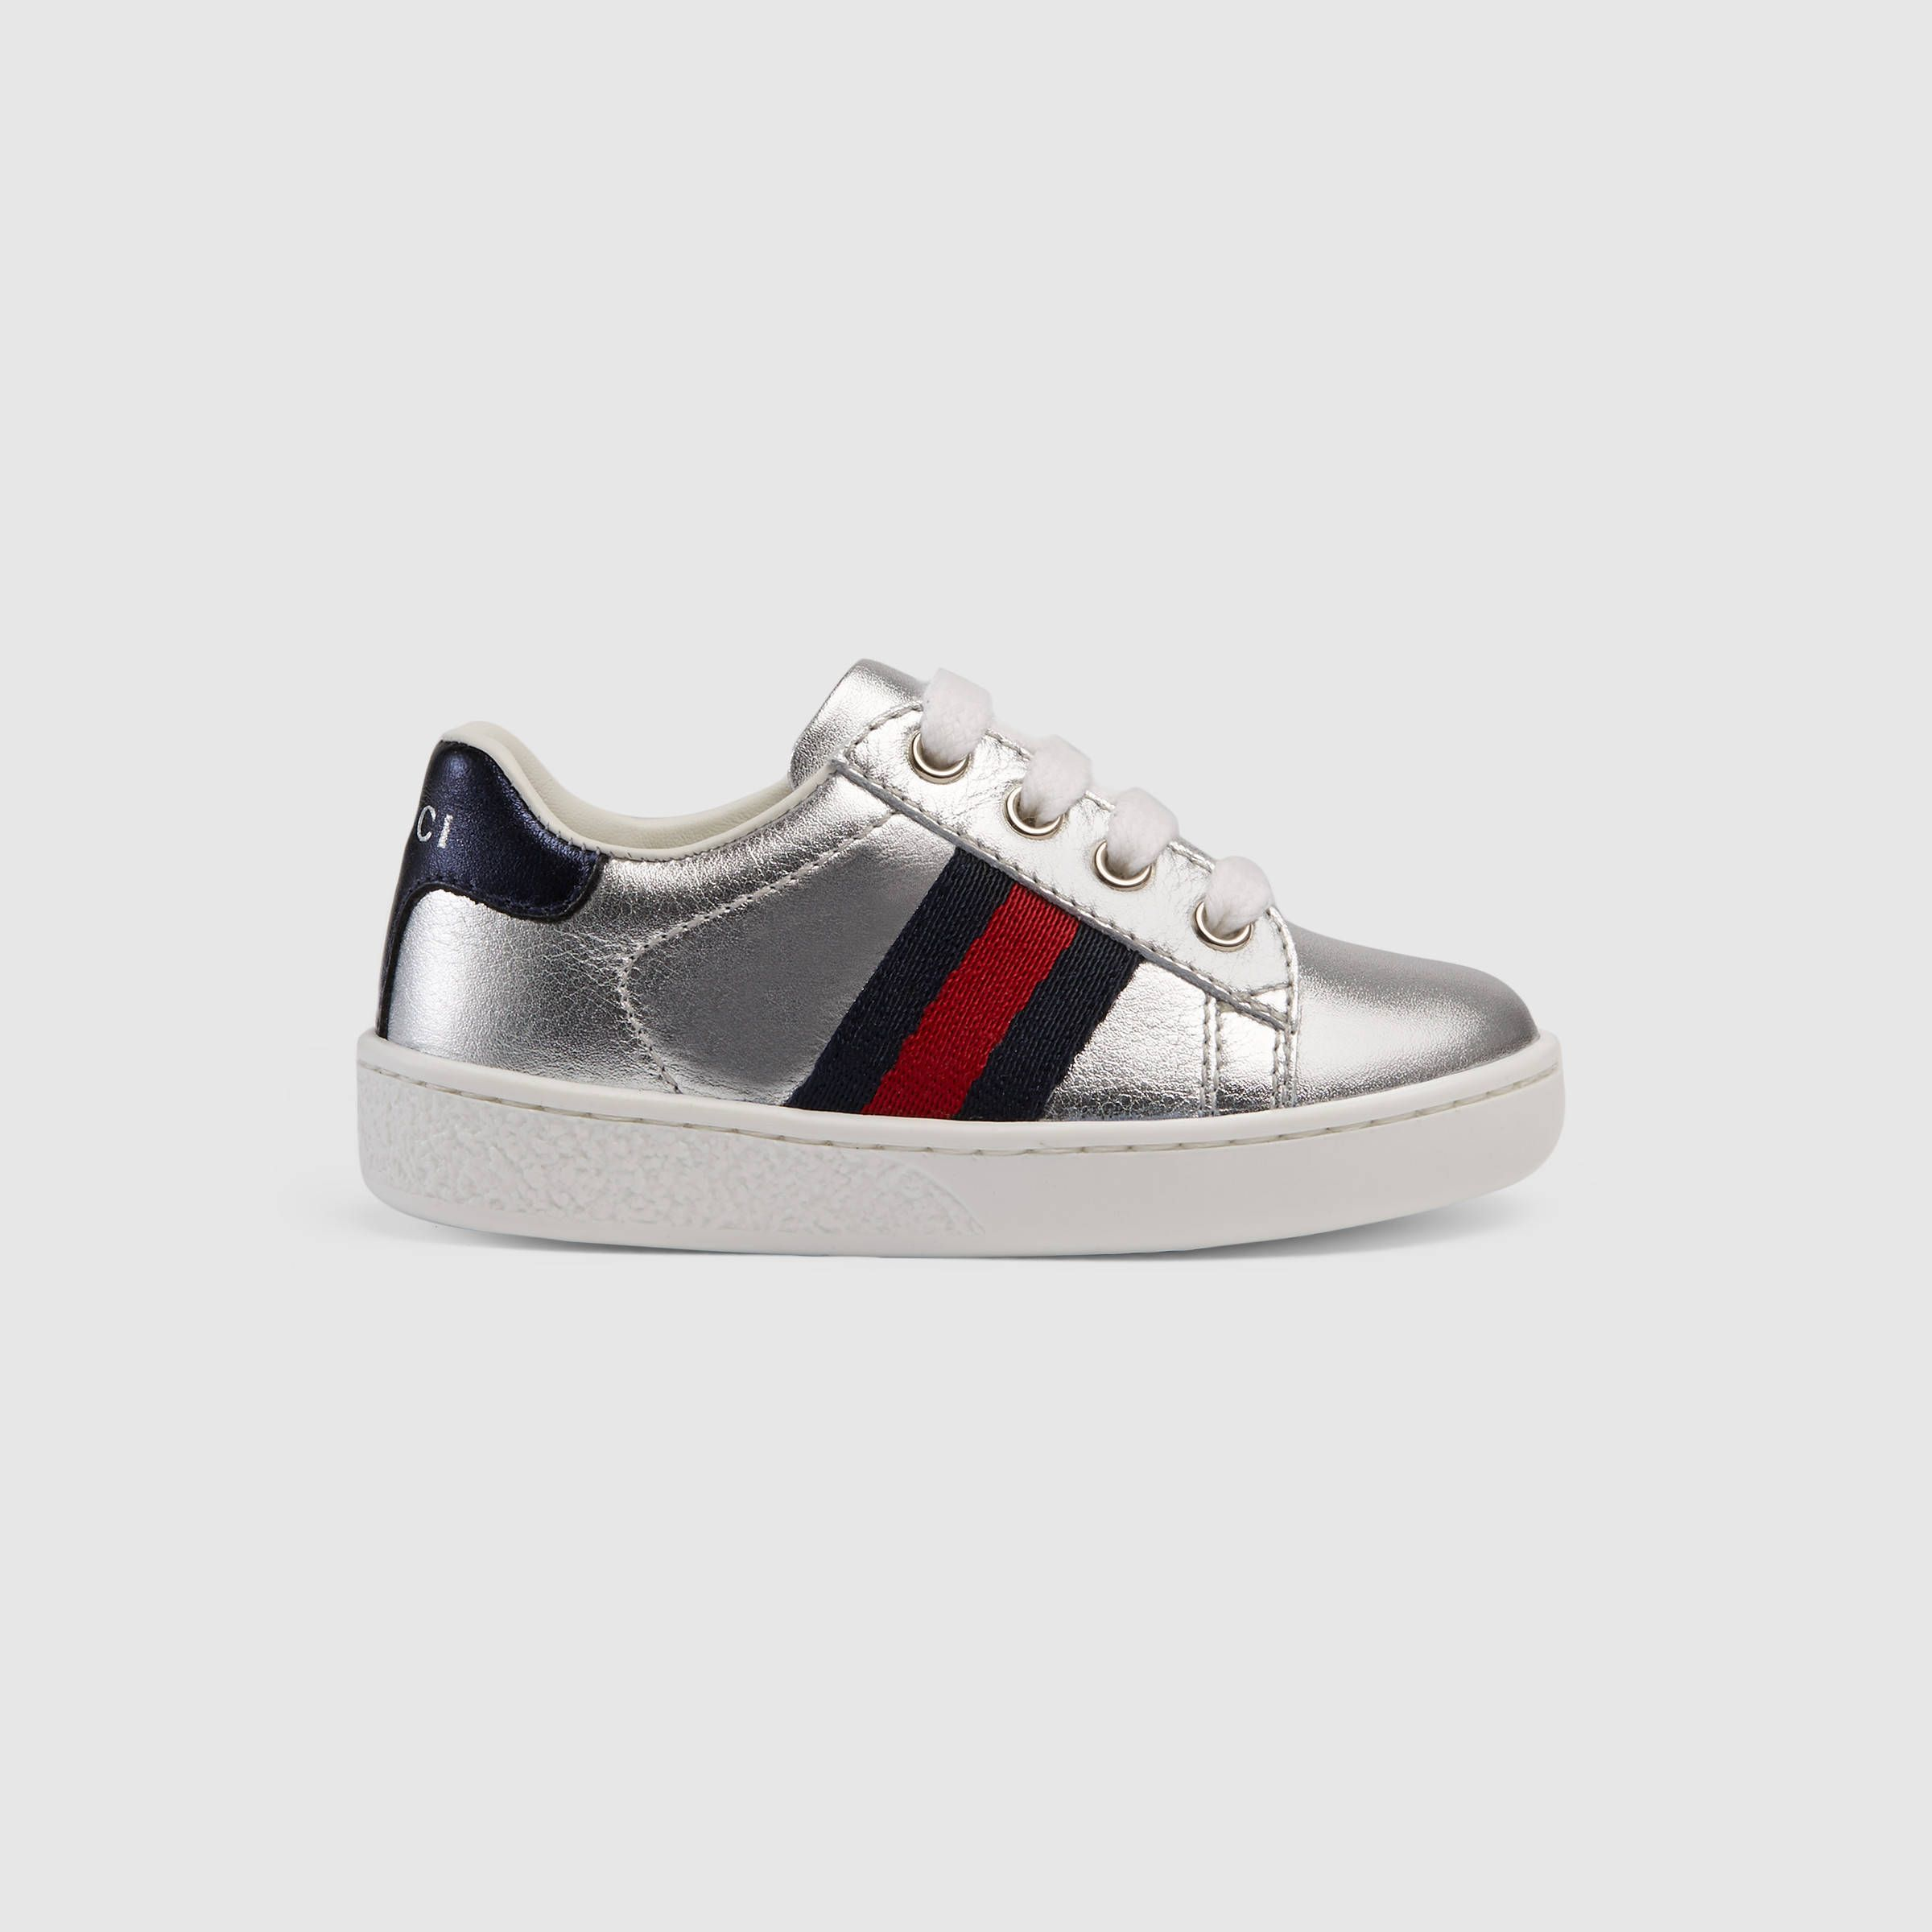 1654a68d2d5 Gucci Children - Toddler leather low-top with Web